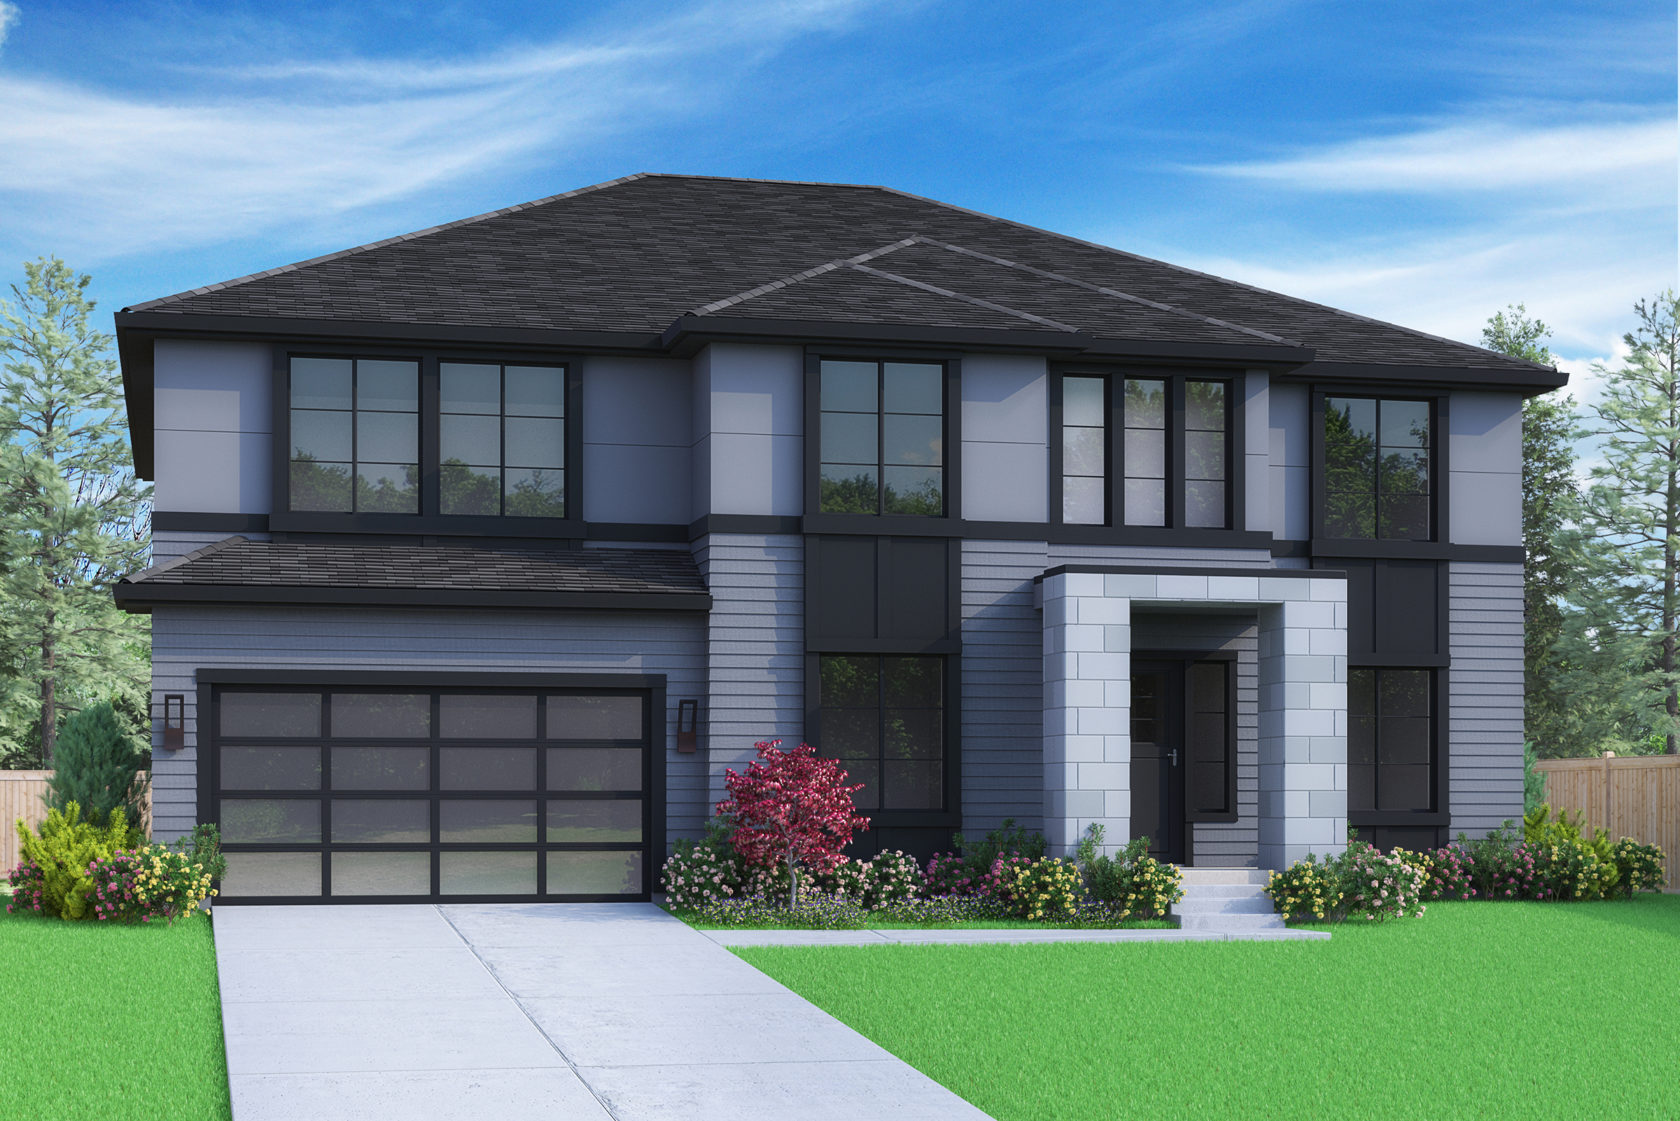 View our new luxury home construction on 2219 151st Pl SE, in Bellevue, WA from MN Custom Homes